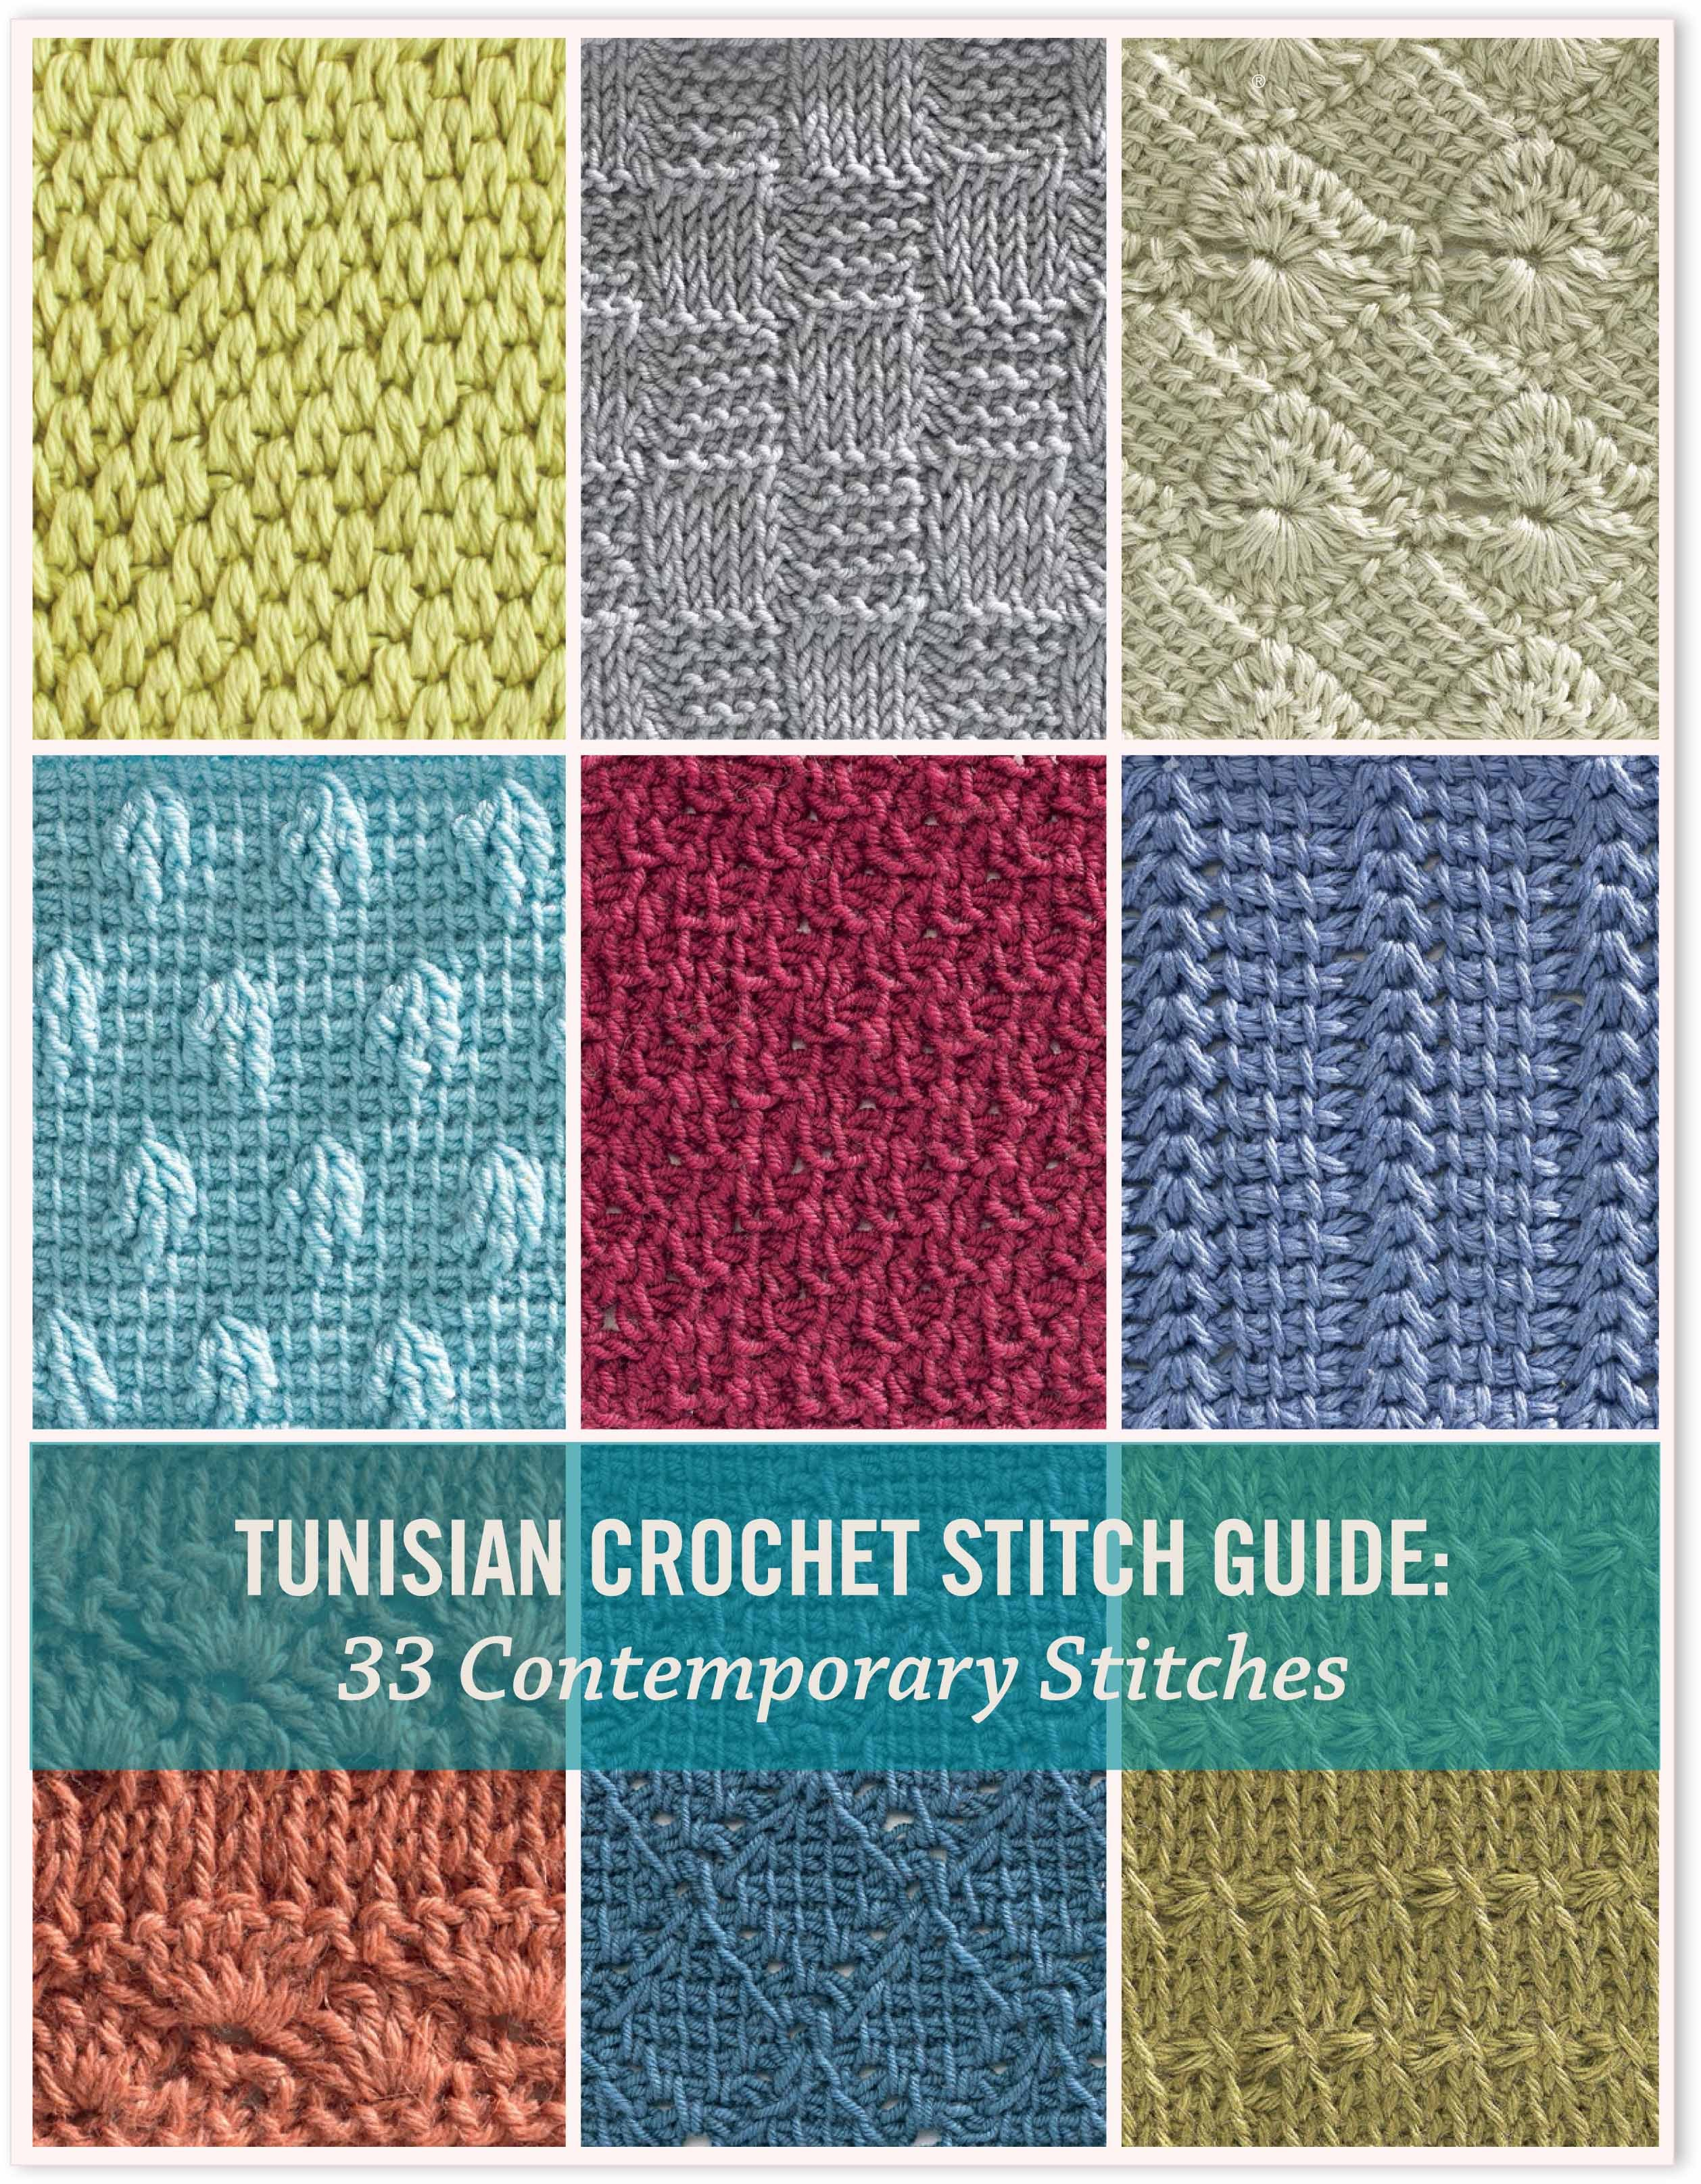 Crochet Stitches Getting Started : tunisian crochet stitch guide ebook discover new tunisian crochet ...